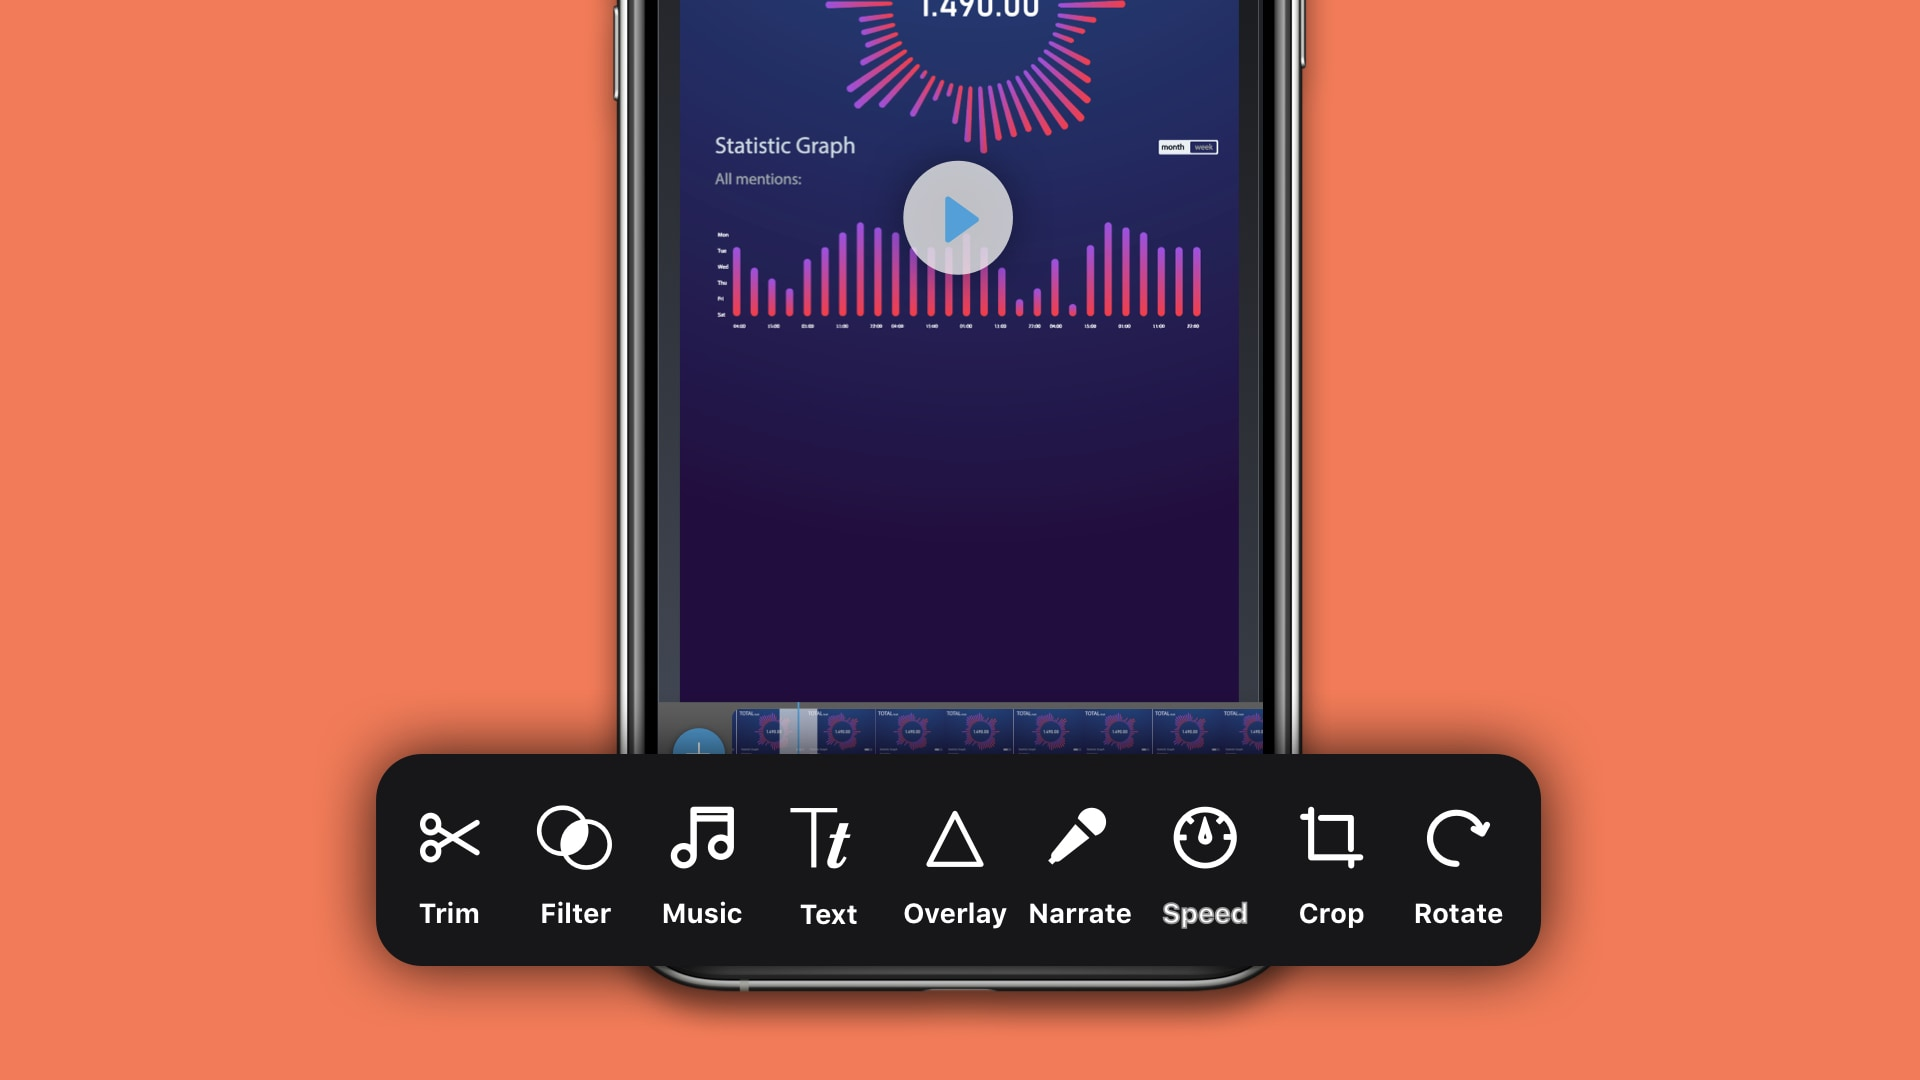 Mobile Video Editing Overview